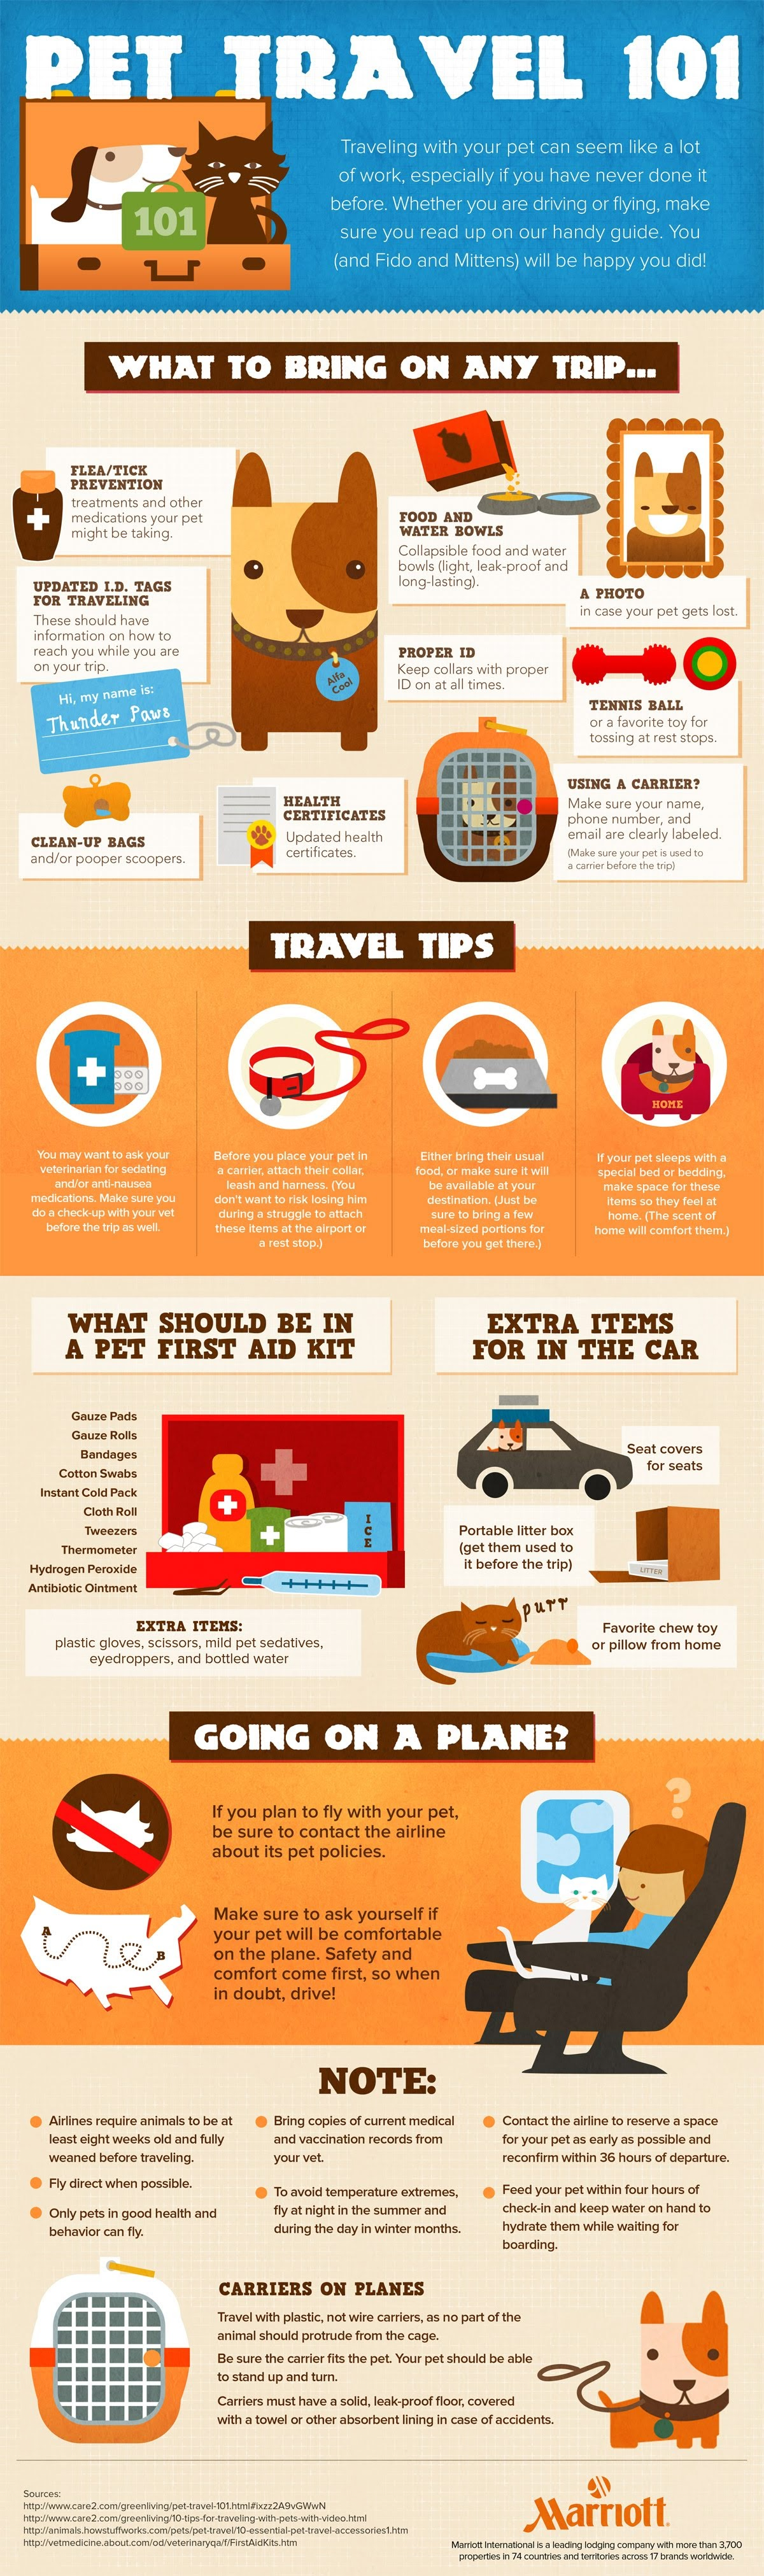 Pet Travel 101 #infographic